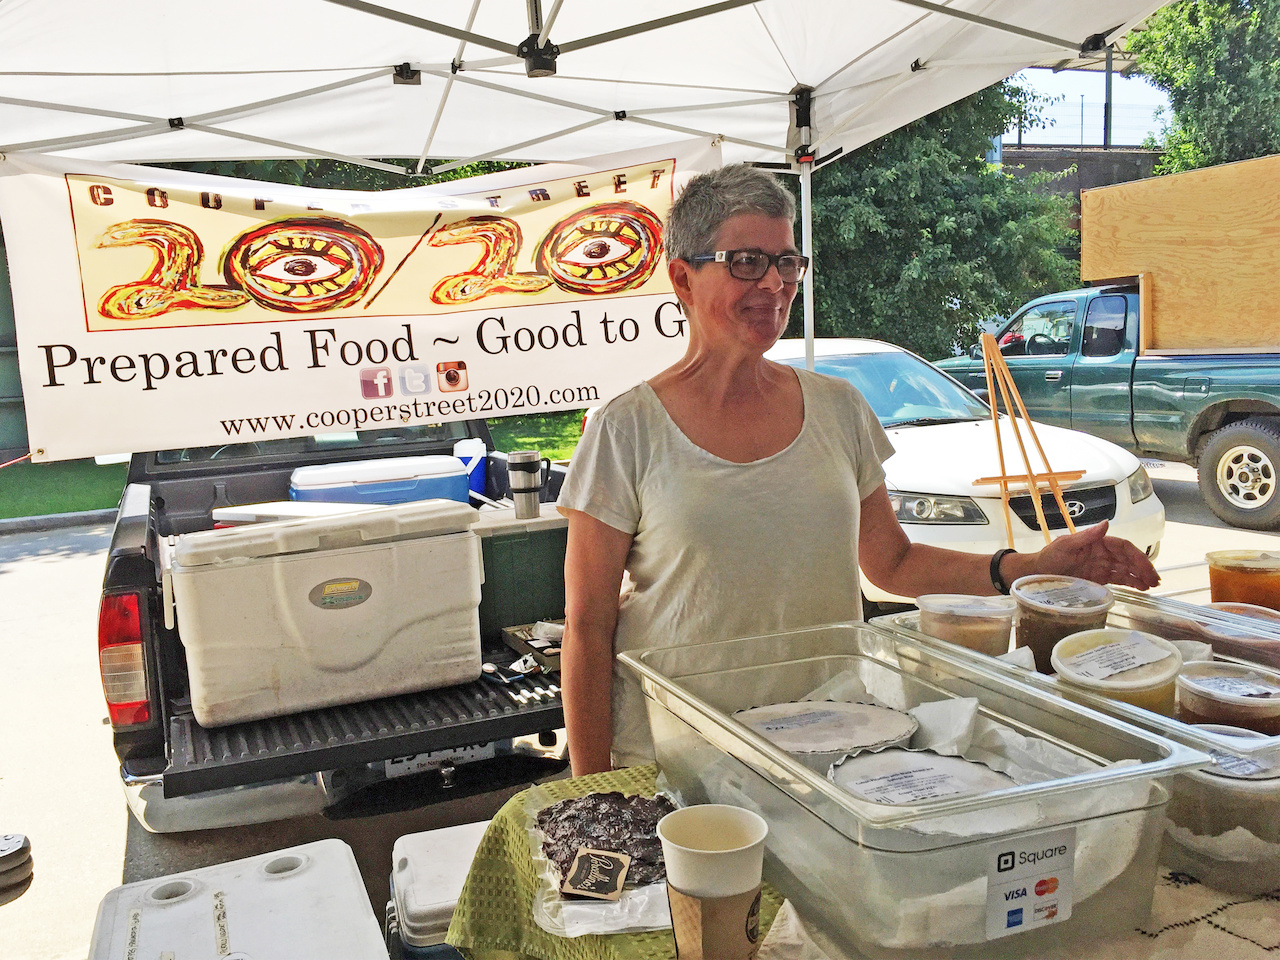 Cooper Street-20/20 owner Kathy Katz with some of her delicious products.